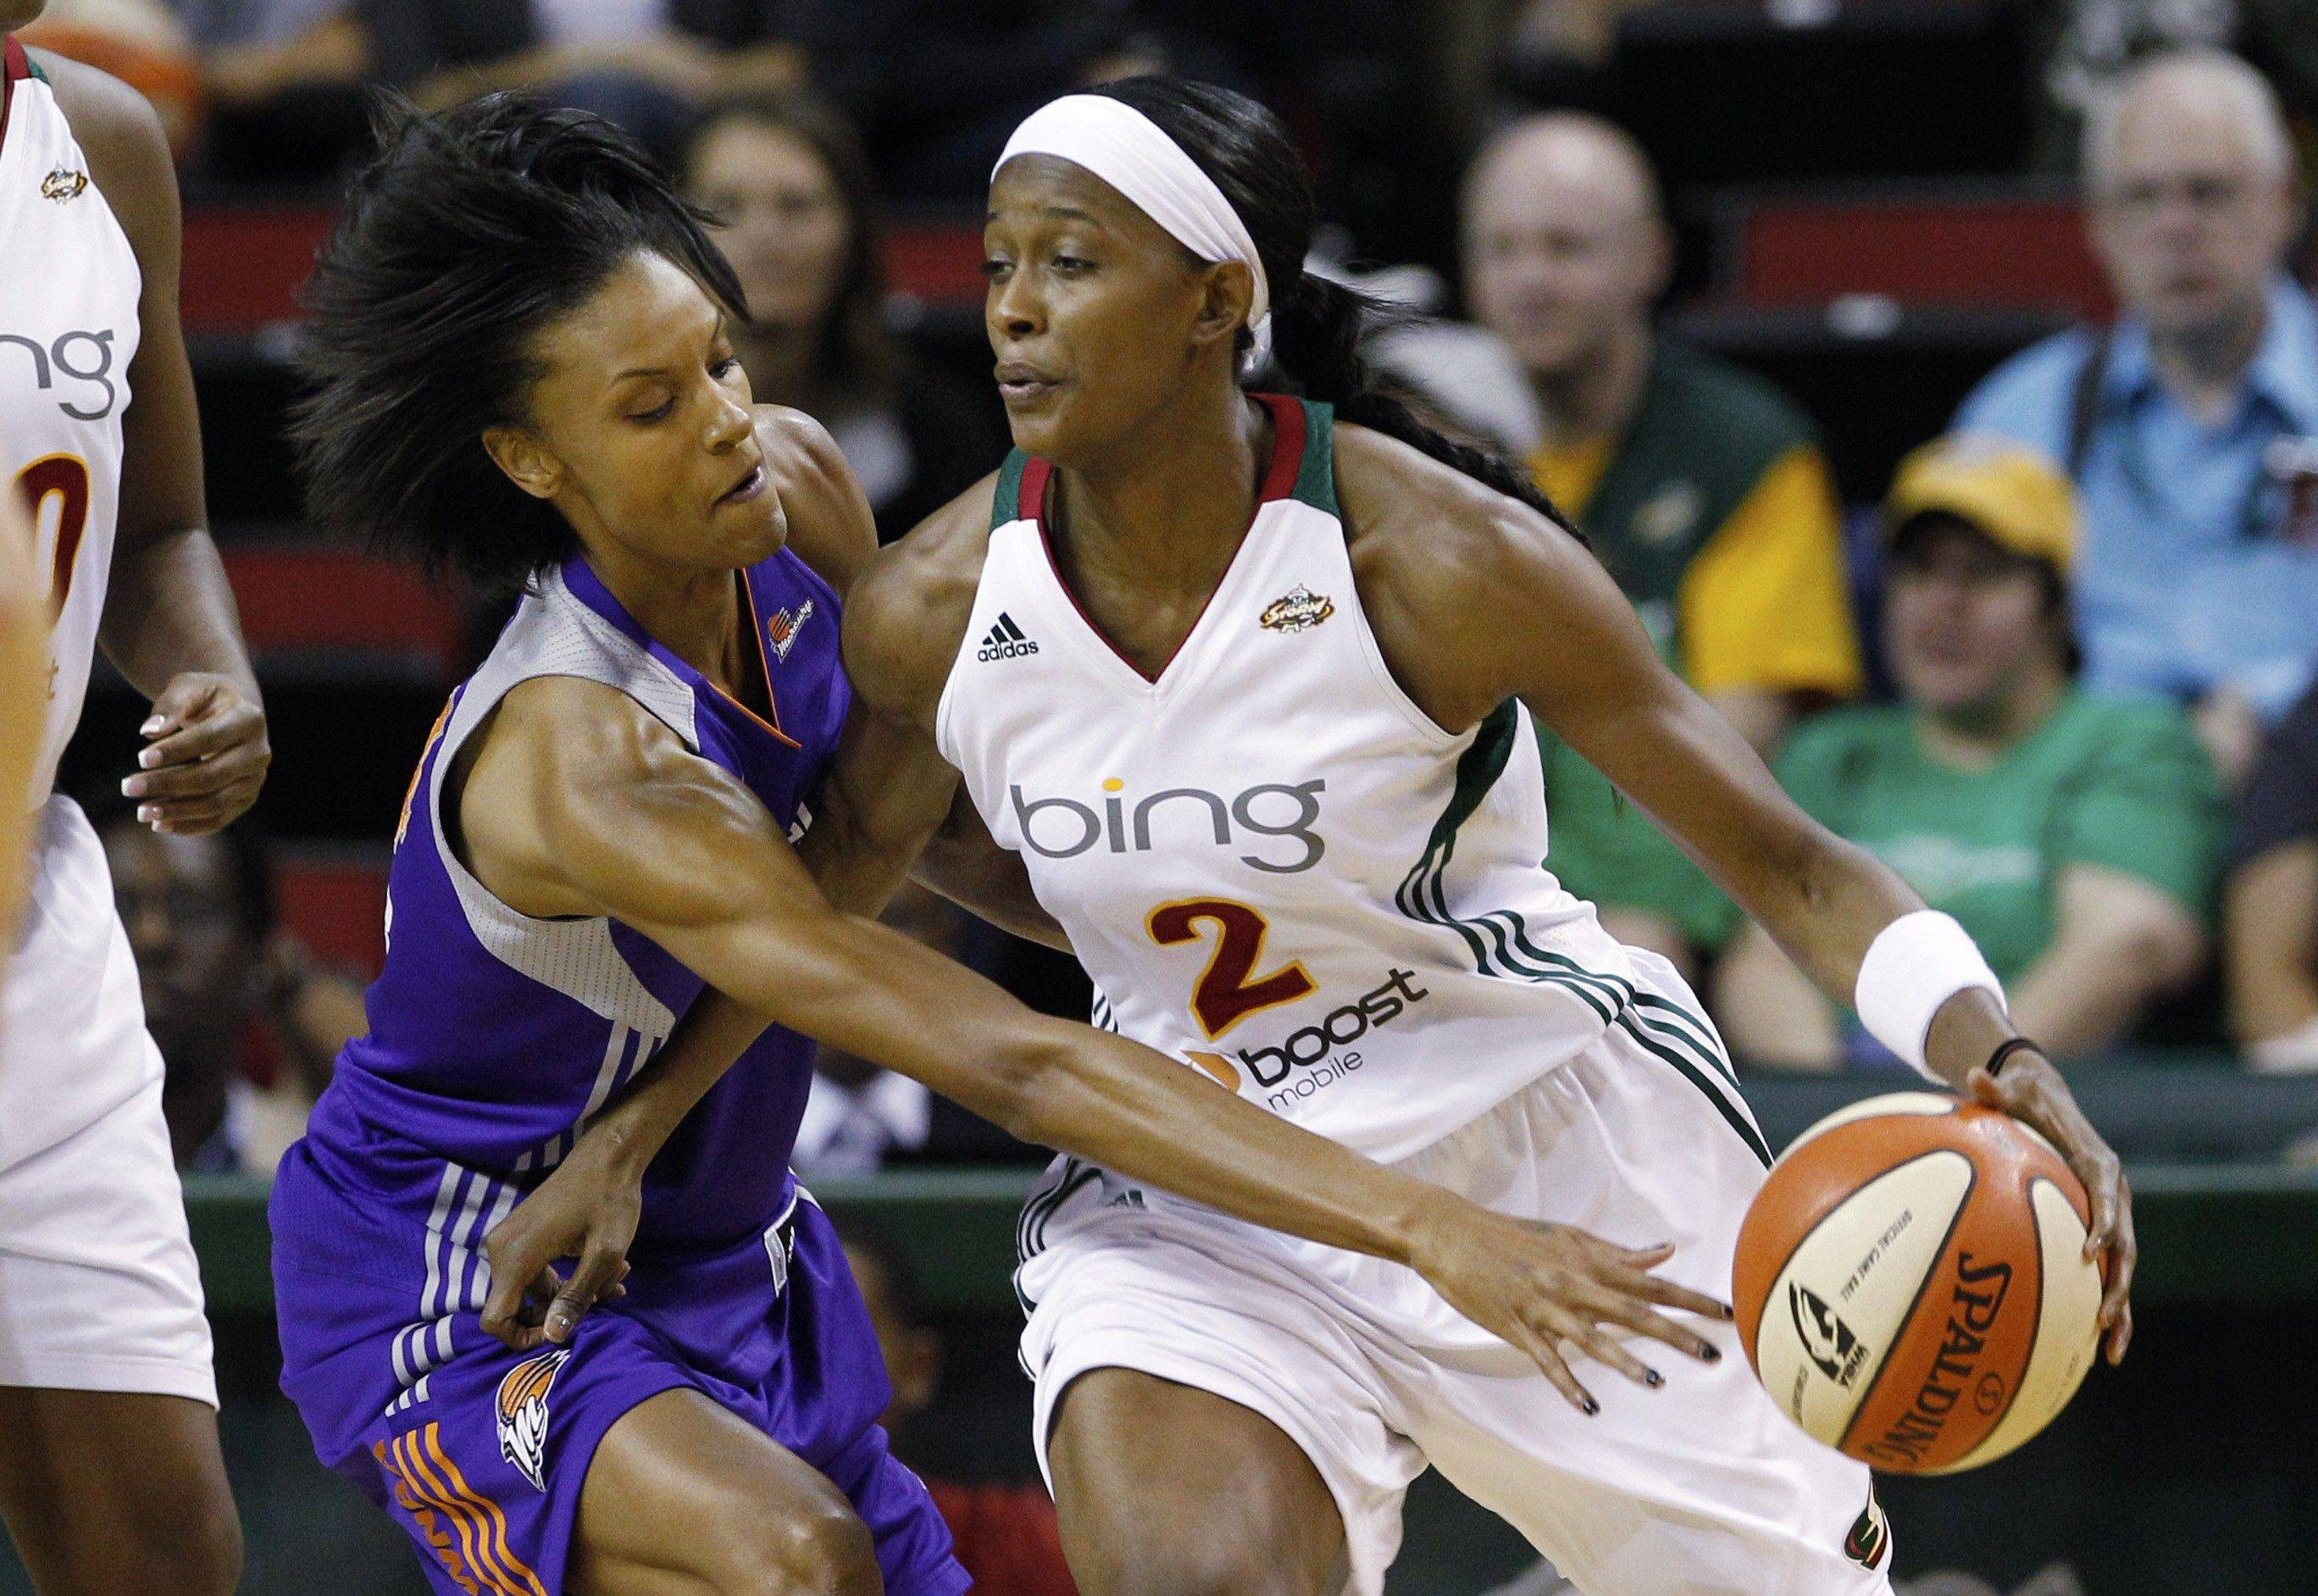 Phoenix Mercury's DeWanna Bonner, left, reaches across Seattle Storm's Swin Cash during the first half of Game 1 of a first-round WNBA playoff basketball series Thursday, Sept. 15, 2011, in Seattle.